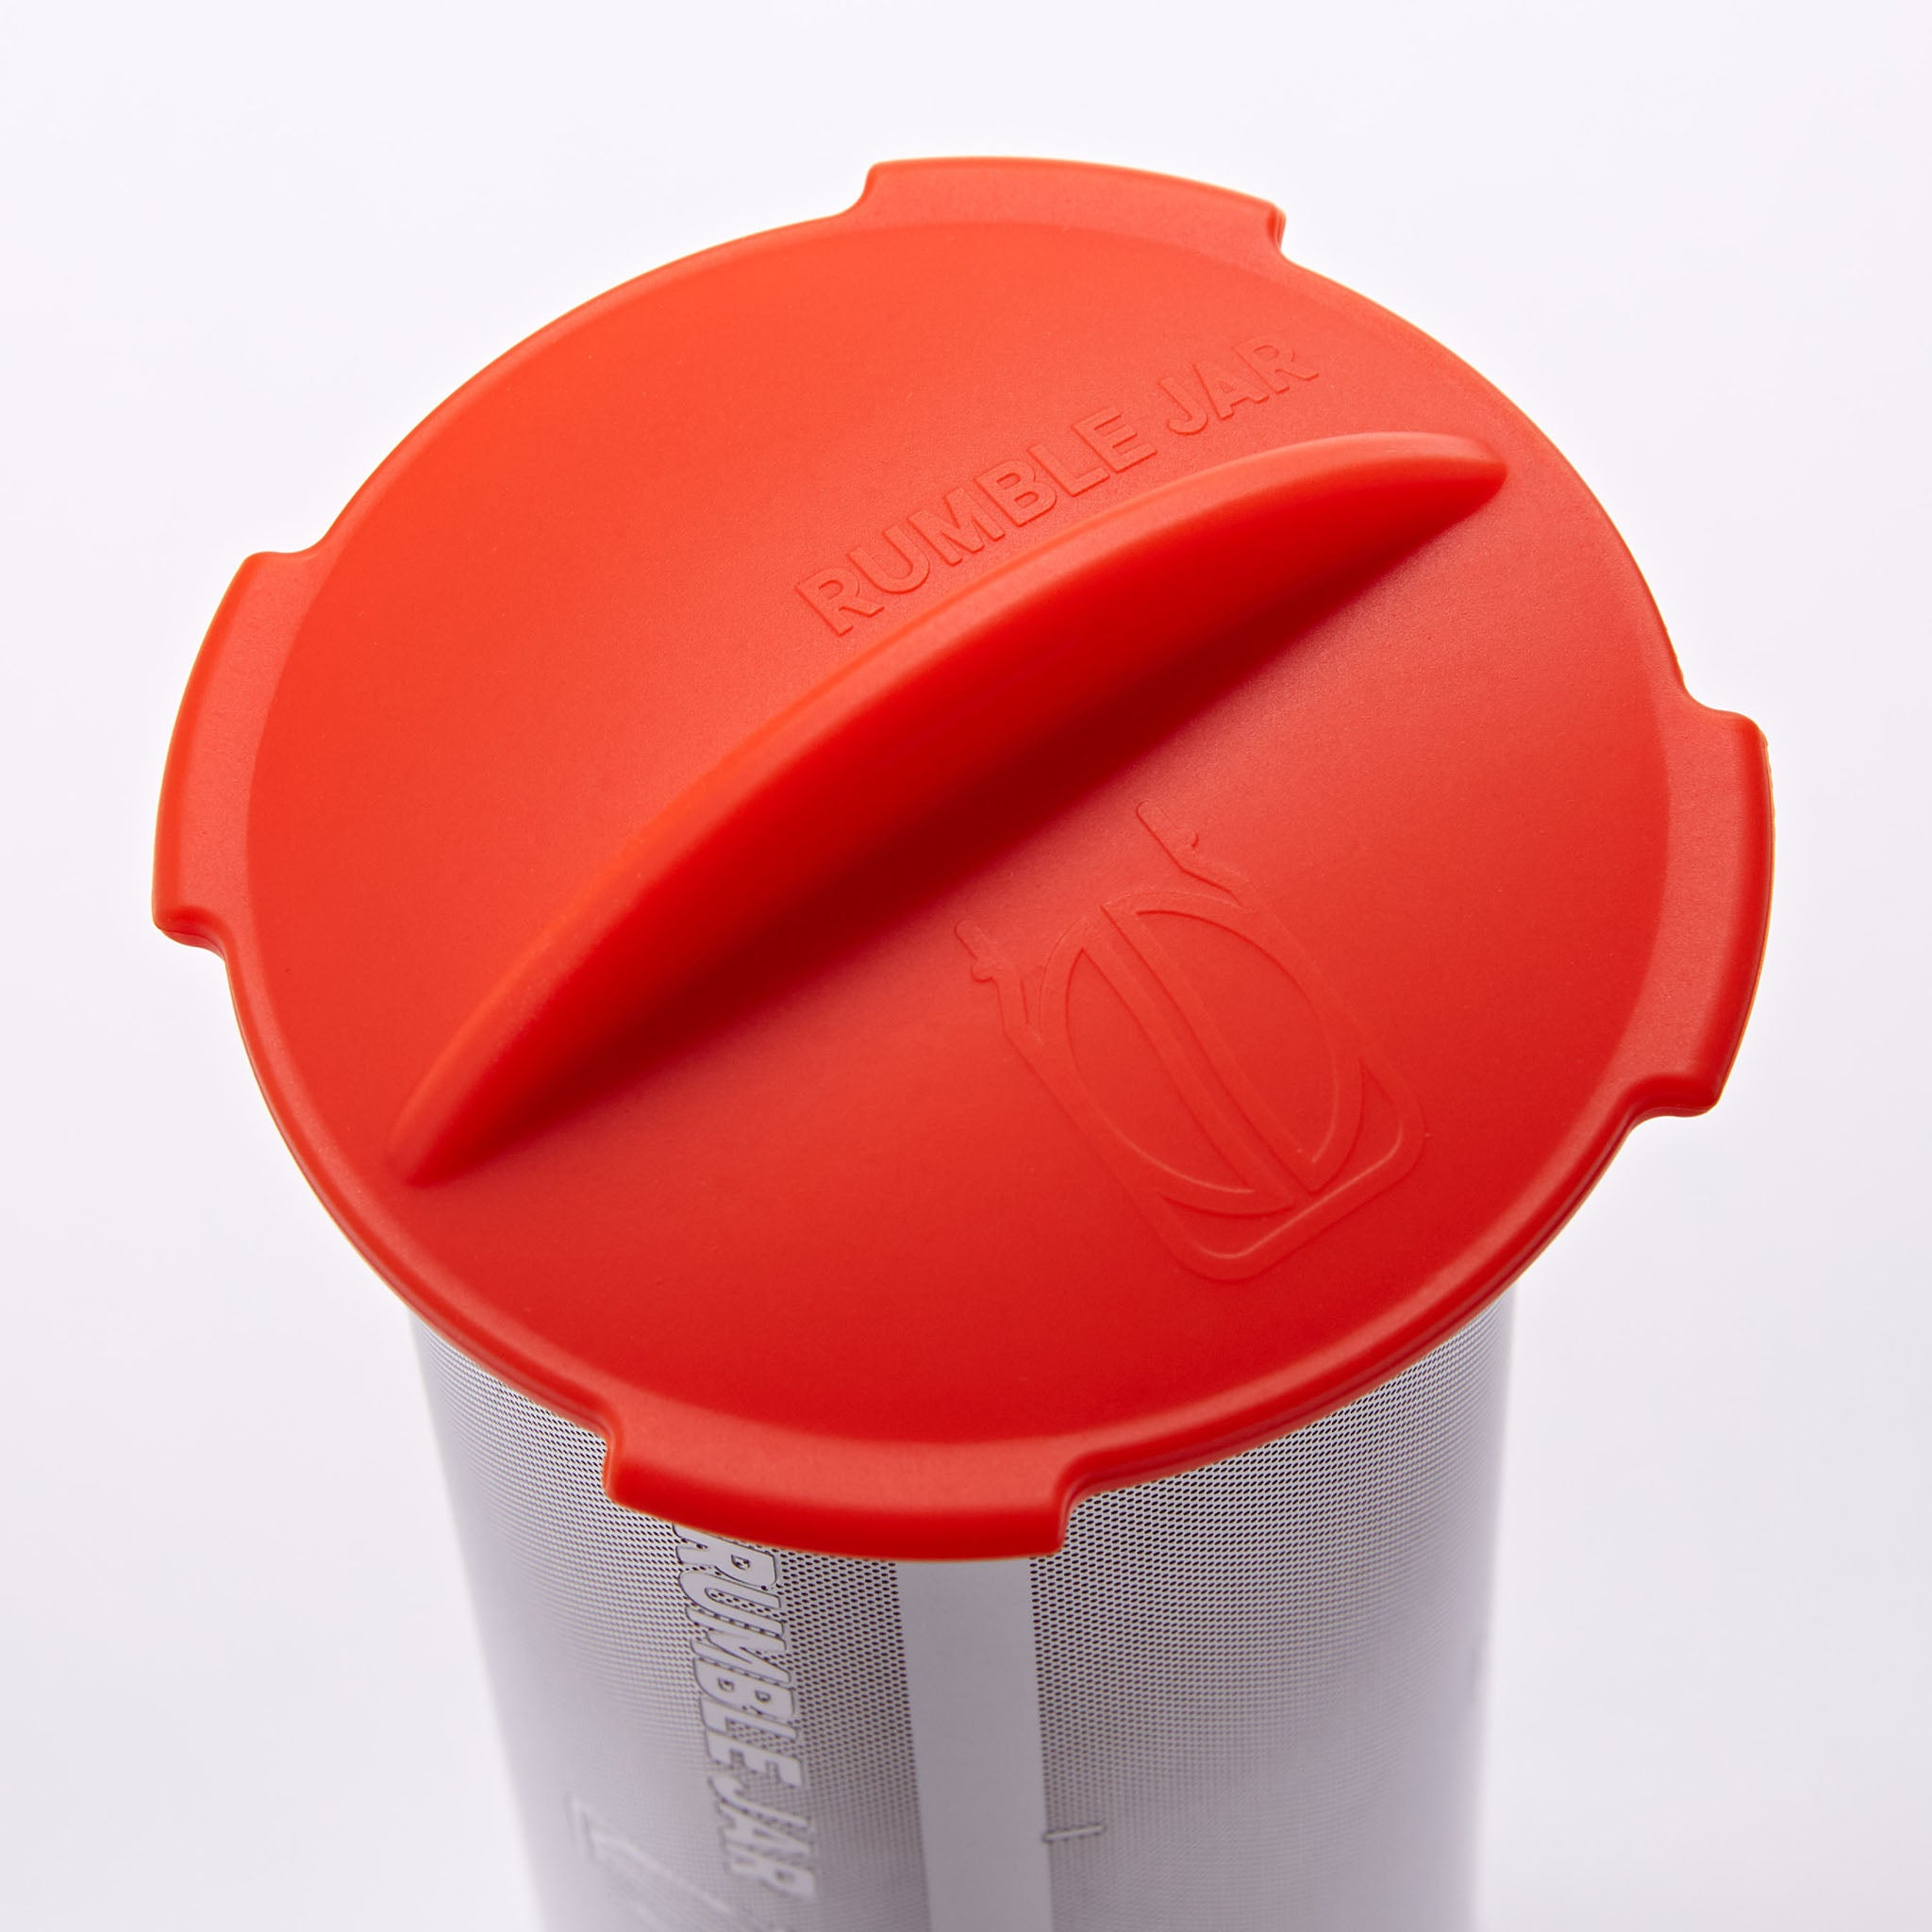 Rumble Jar's silicone cap in Orangey-Red